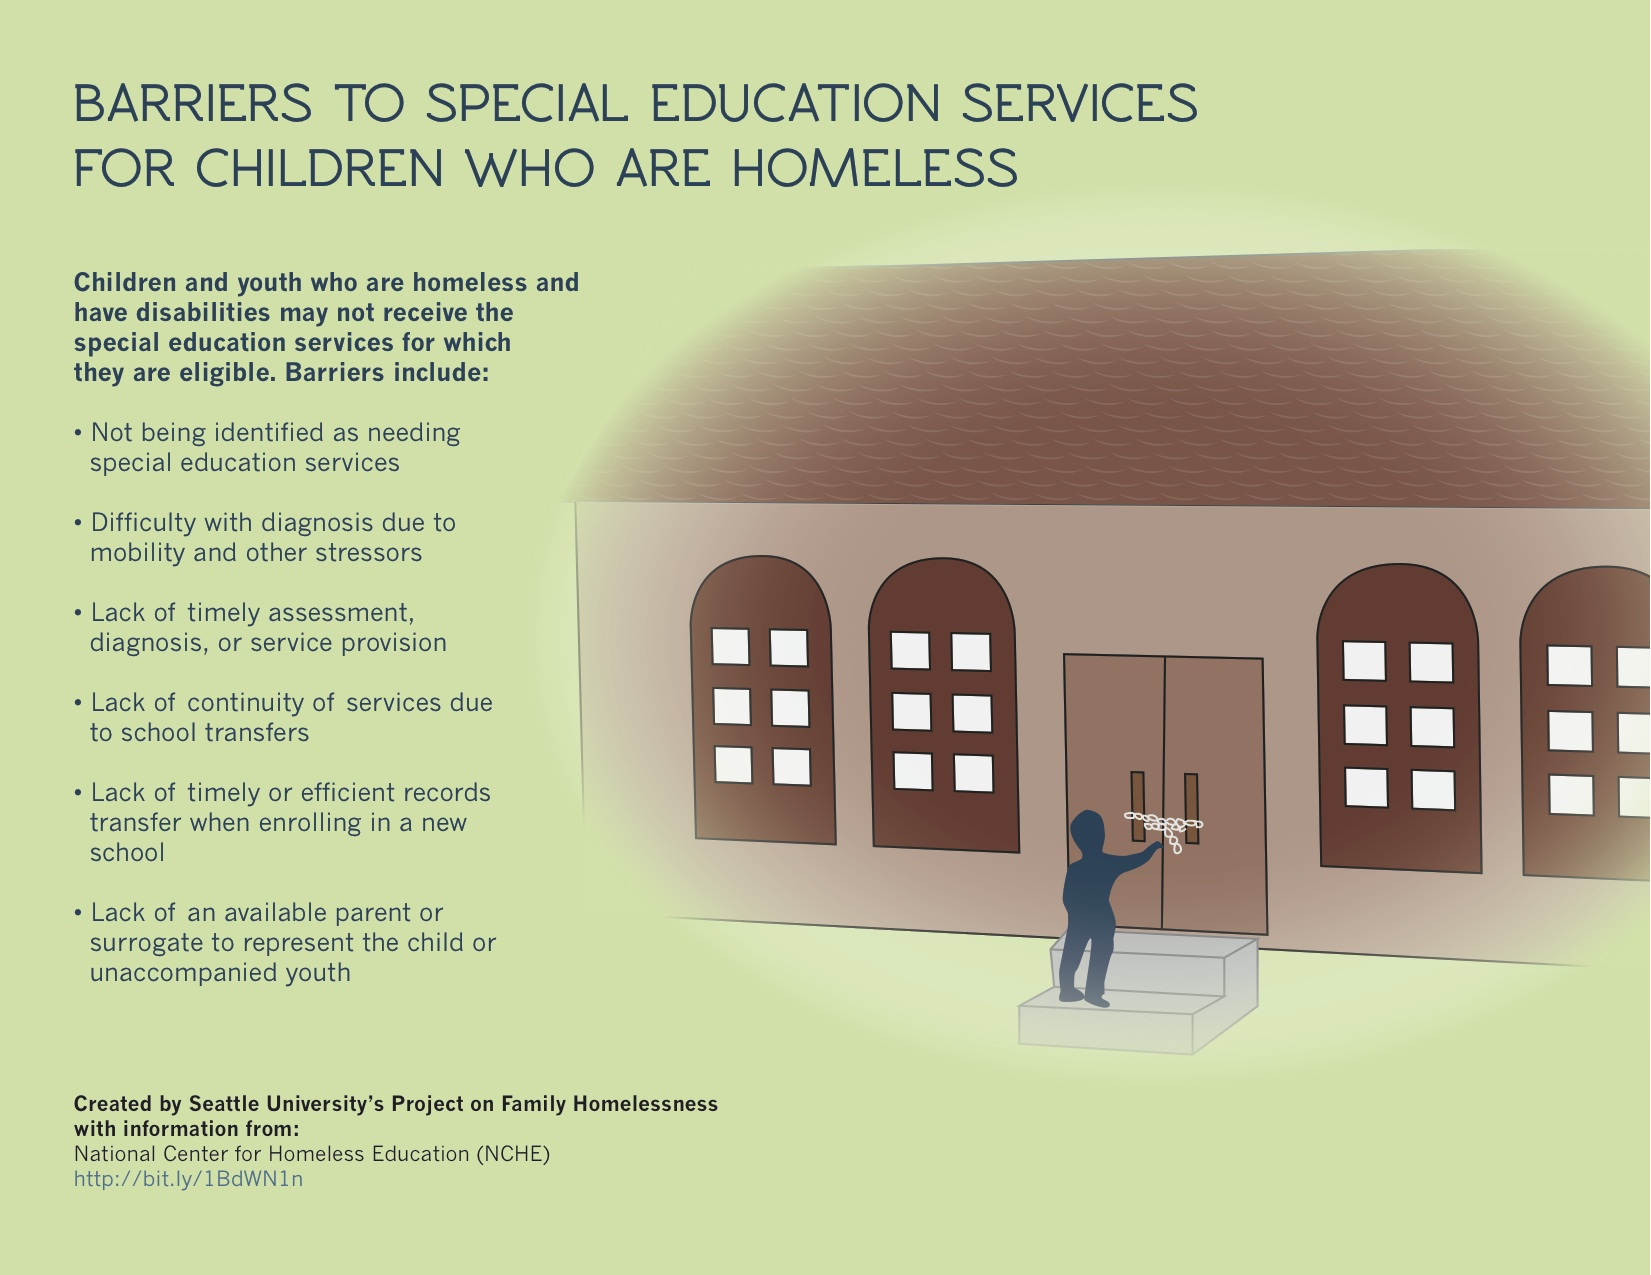 reasearch paper barriers among homeless youth National association for the education of homeless children and youth a large body of research on homelessness barriers to exiting homelessness.